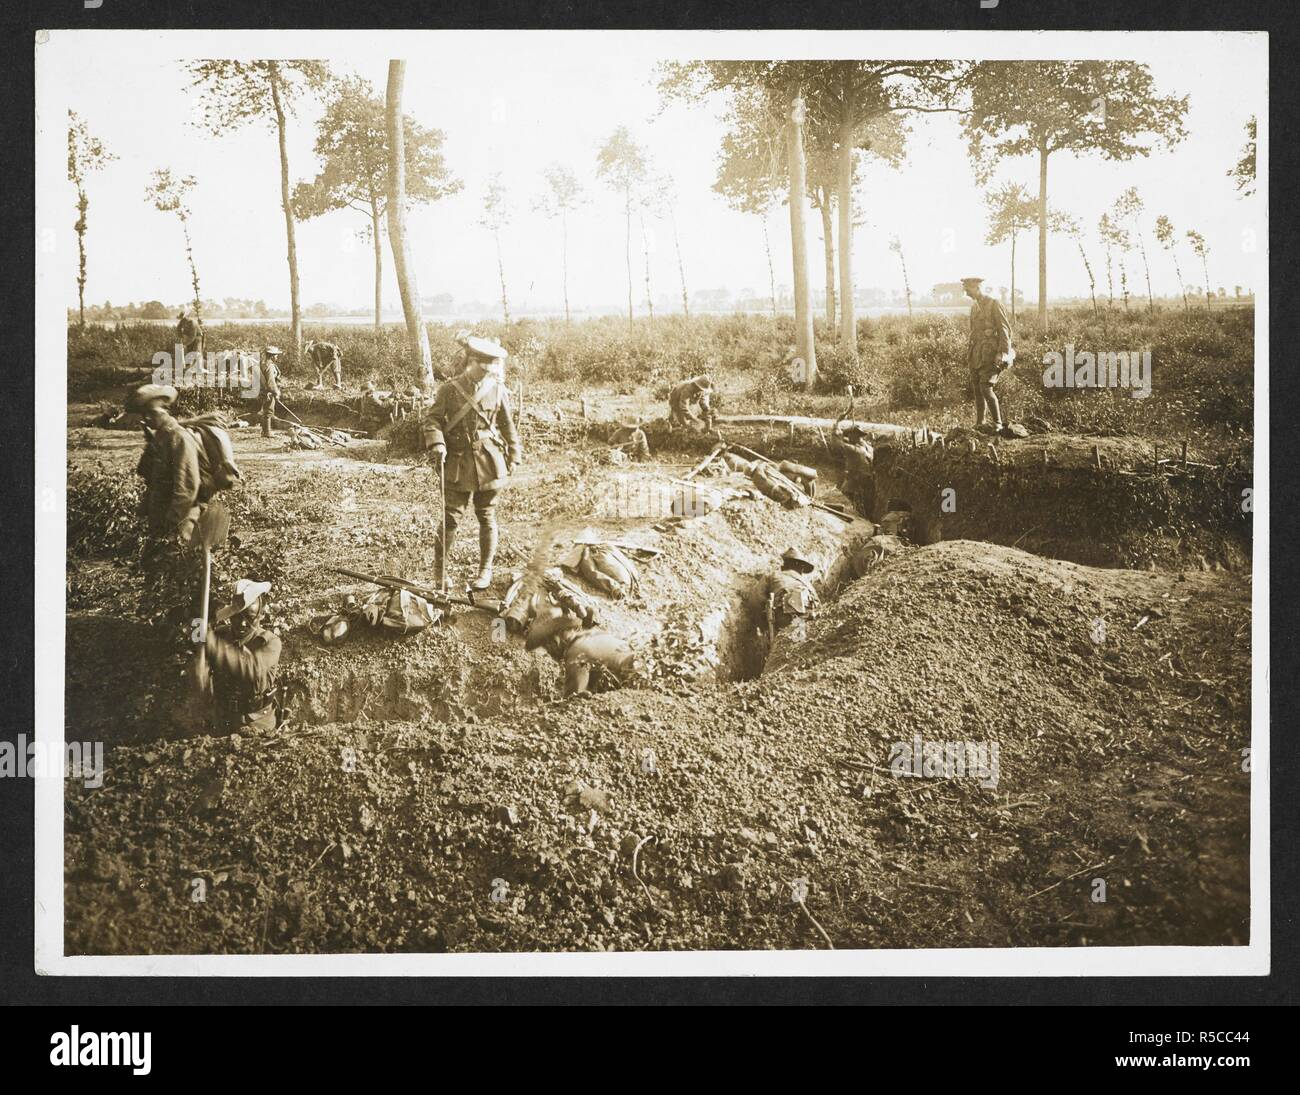 Fire Trench Stock Photos Images Alamy Diagram Ww1 1 Gurkhas At Work On A And Communication